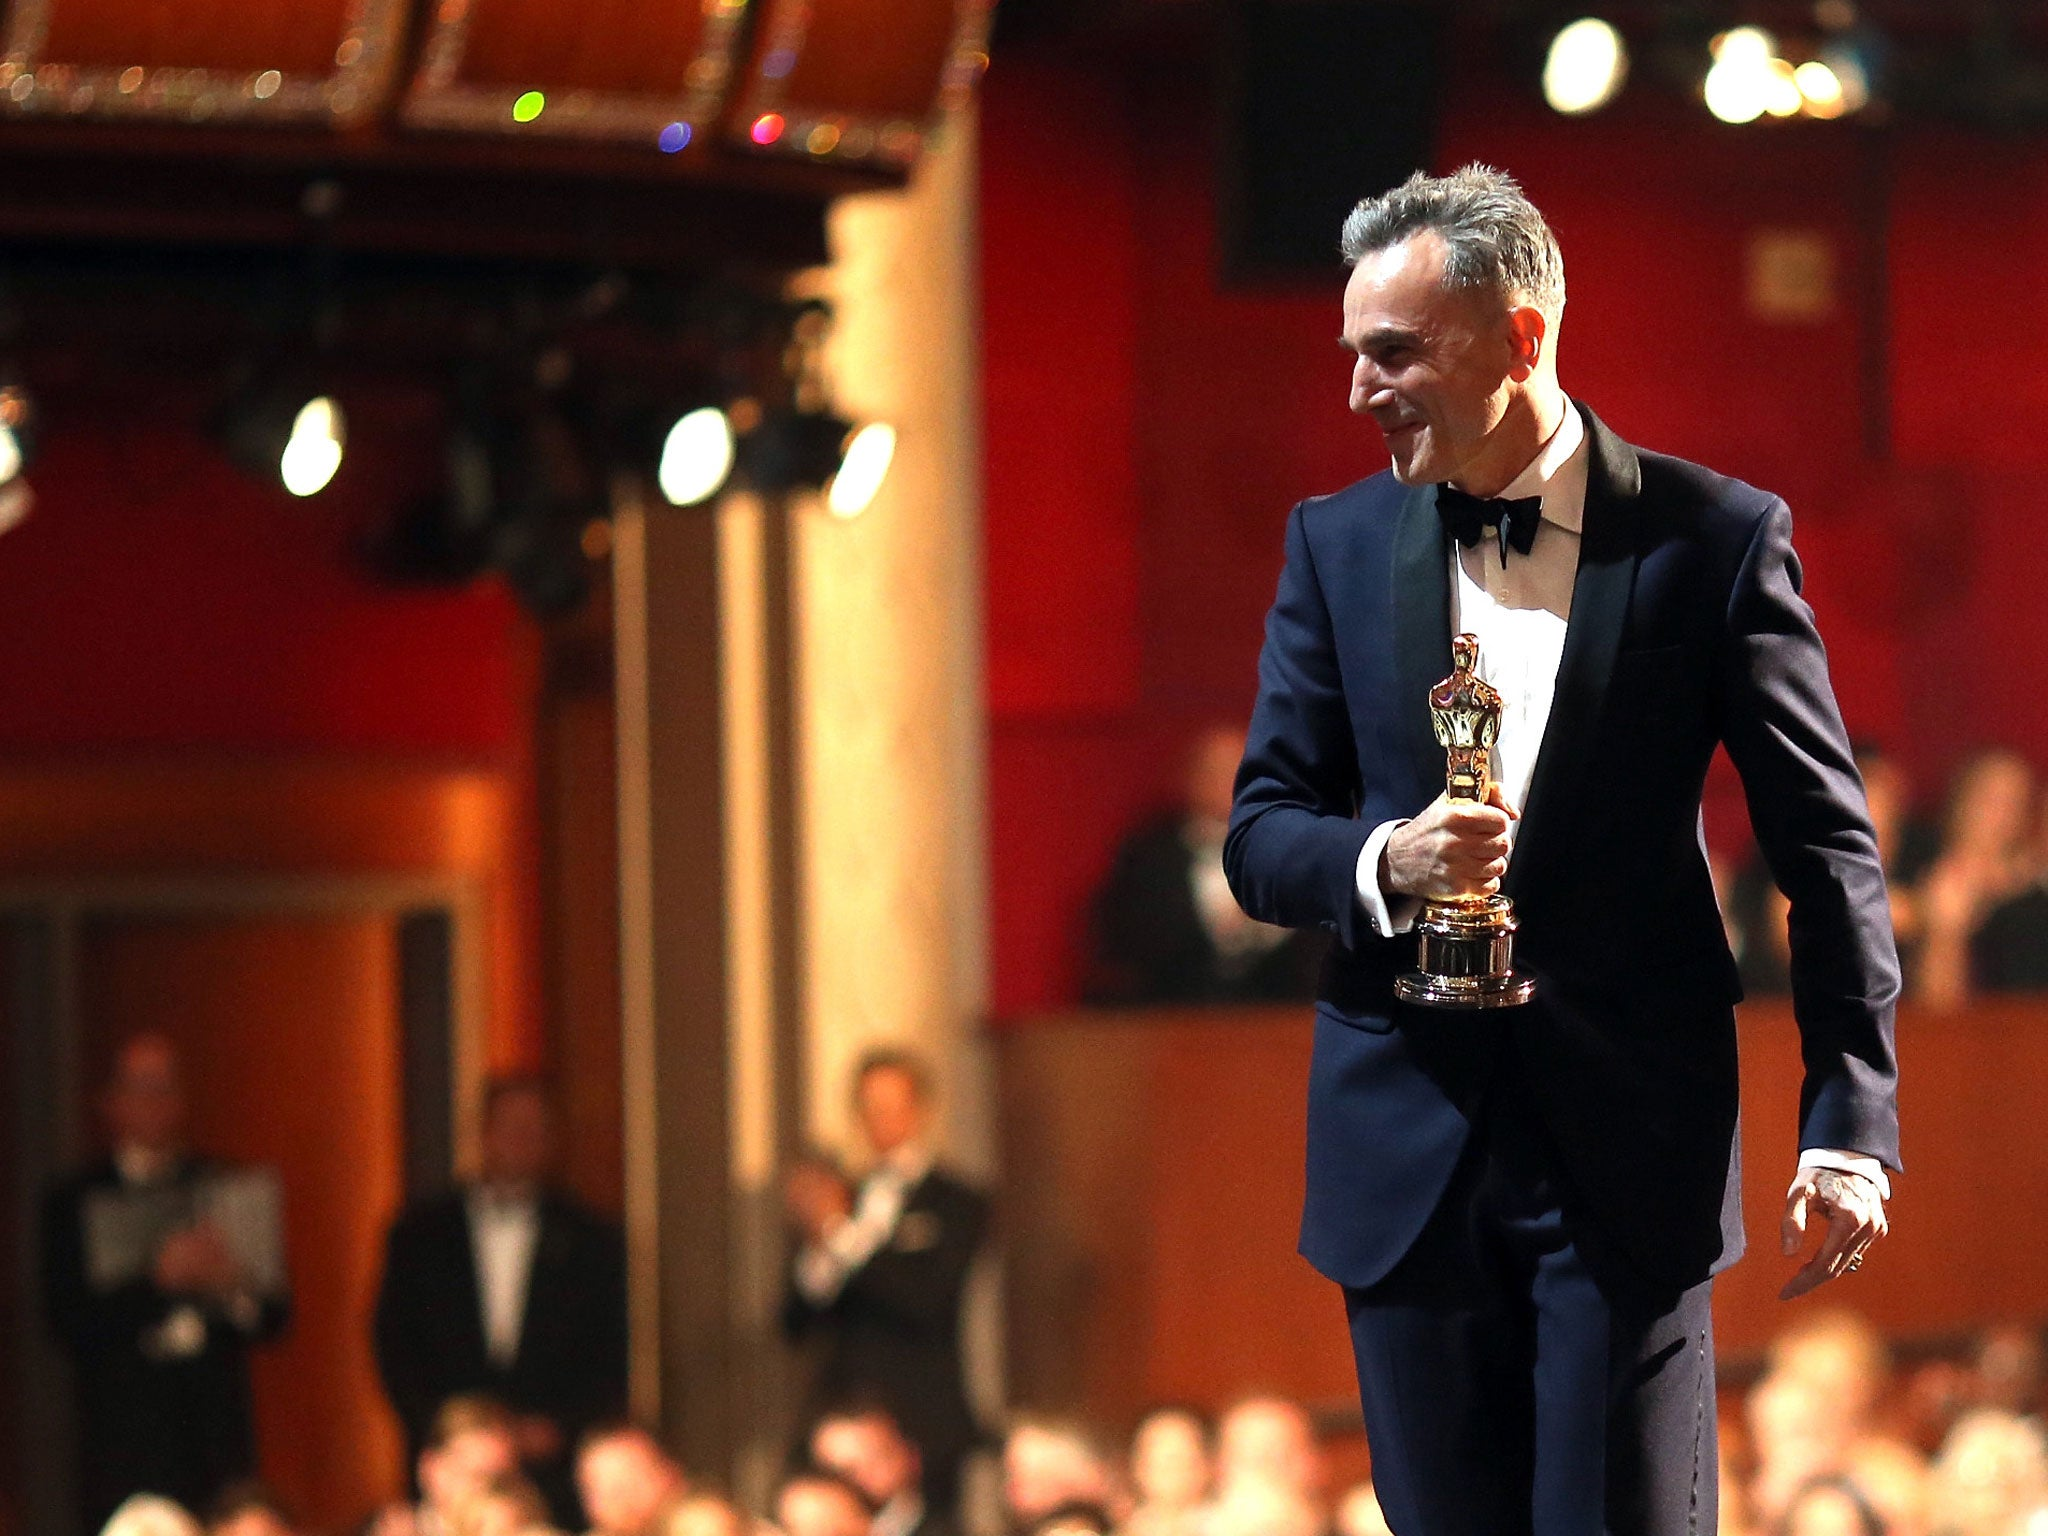 like the soon to be carpenter daniel day lewis all oscar winners like the soon to be carpenter daniel day lewis all oscar winners should go off and do something else the